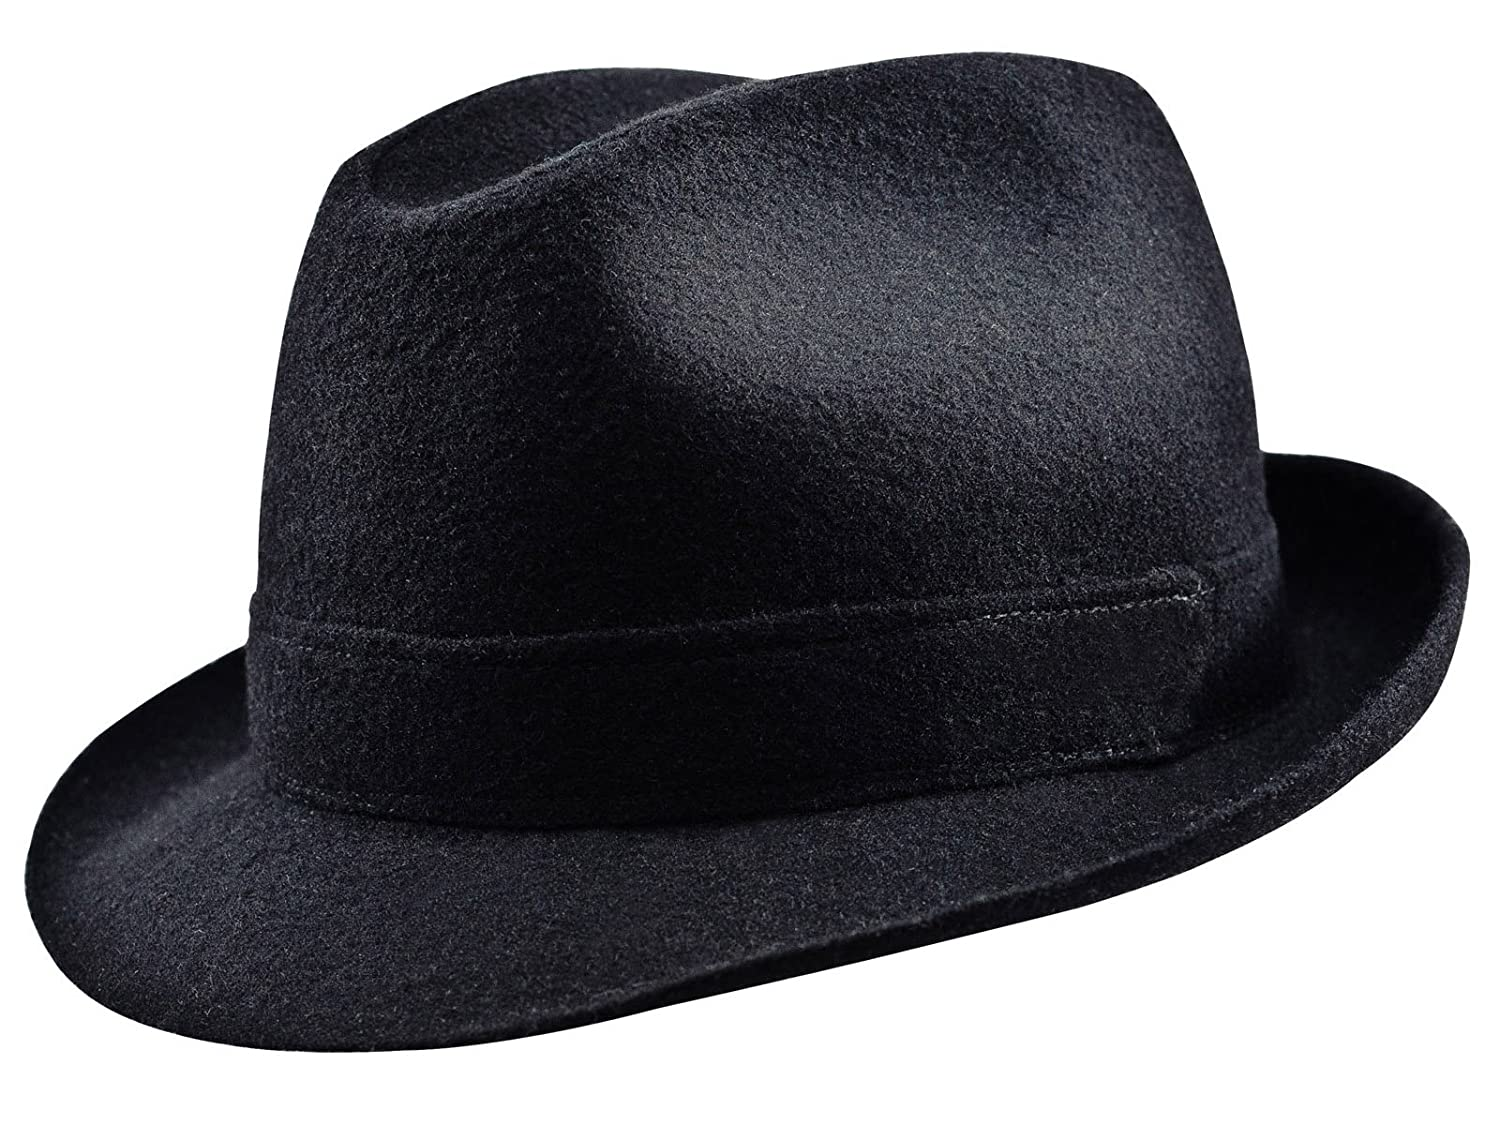 Sterkowski Woolen Sewn Trilby Hat Blues Brothers Vintage Style